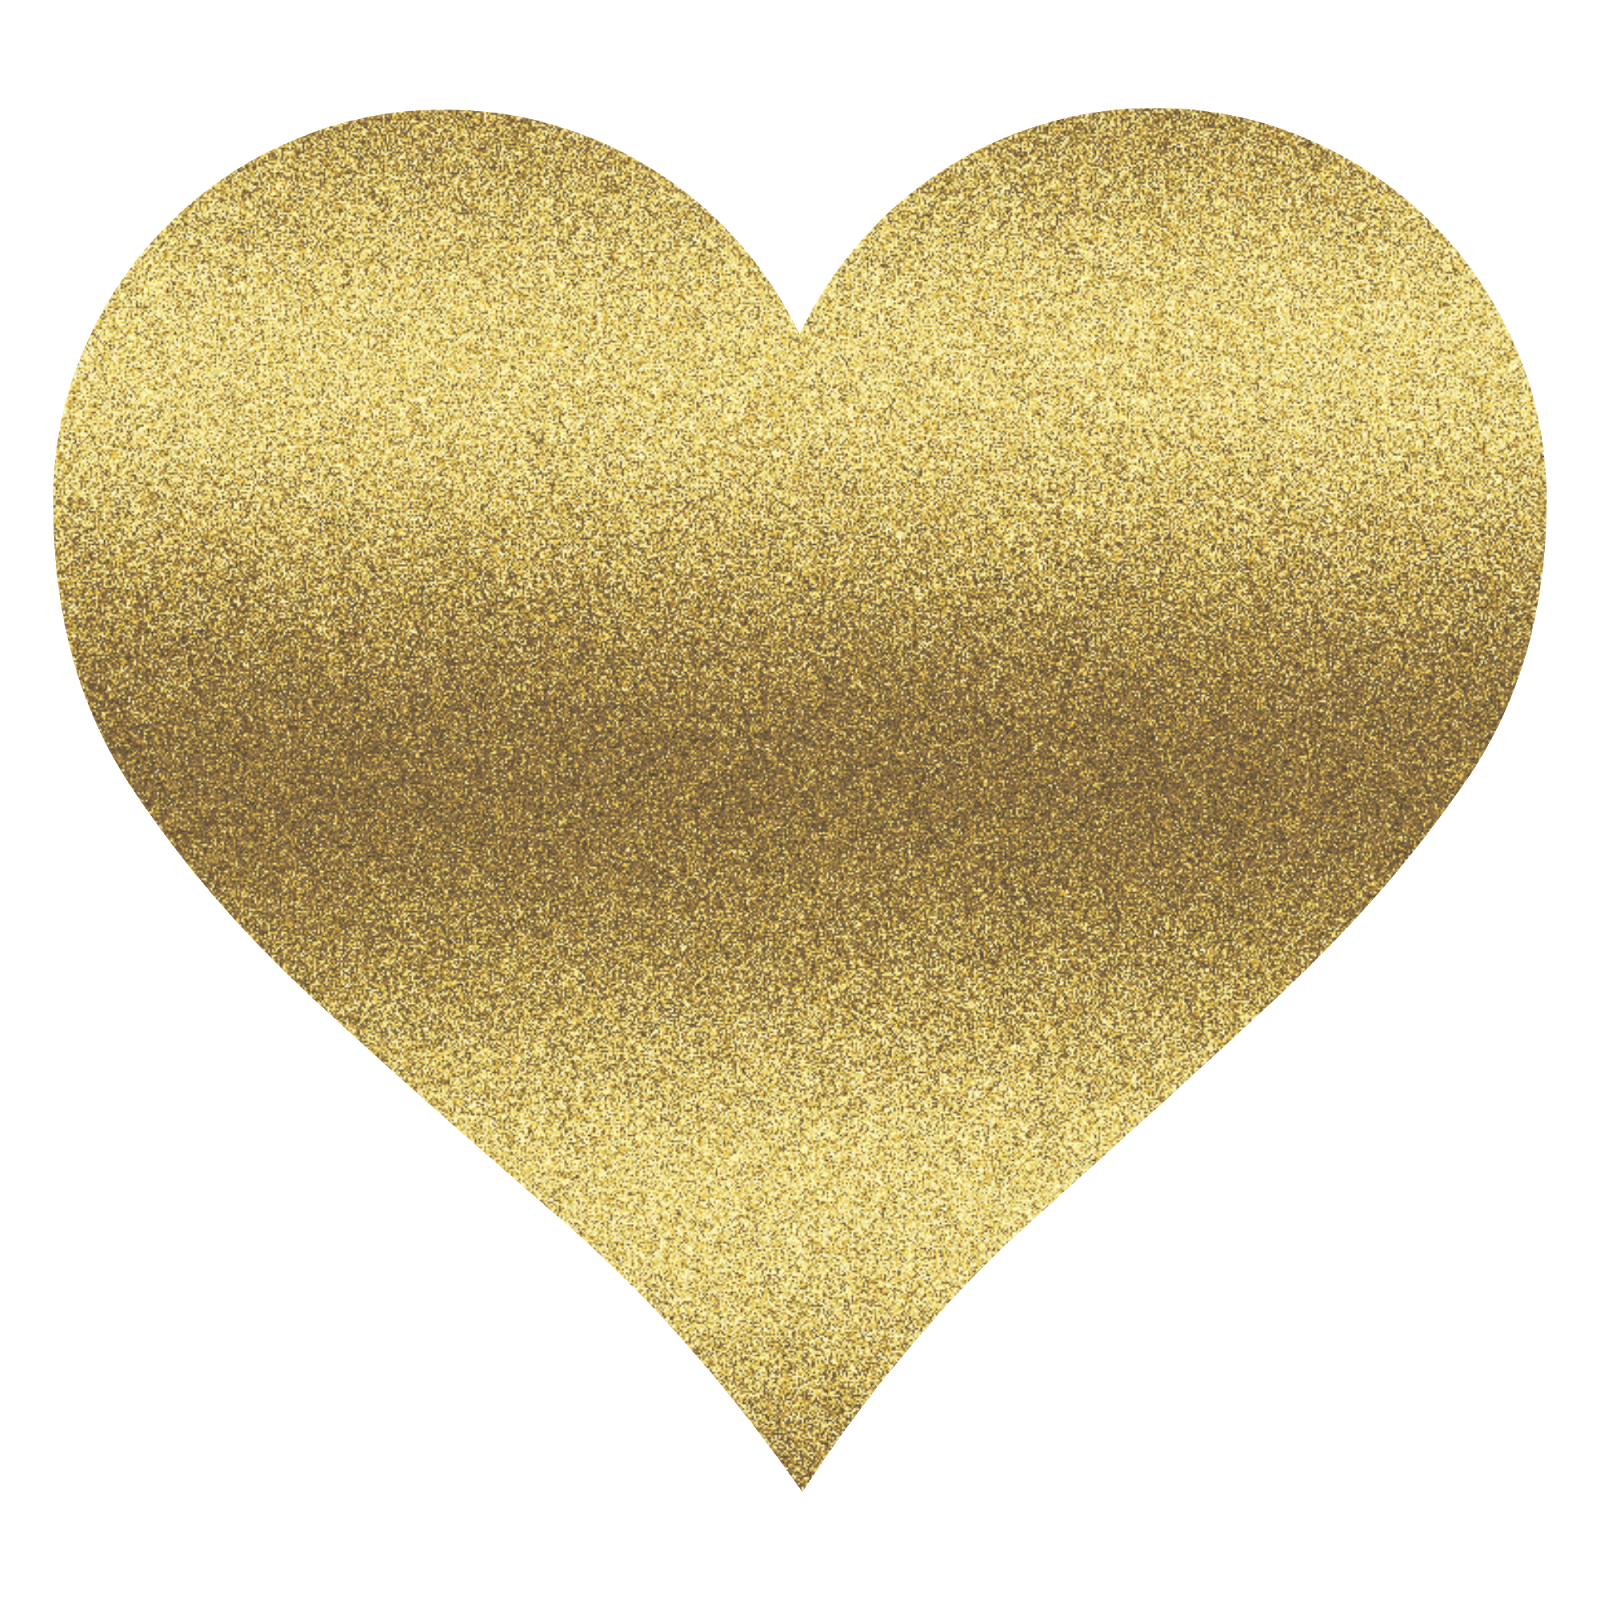 heart, png gold glitter